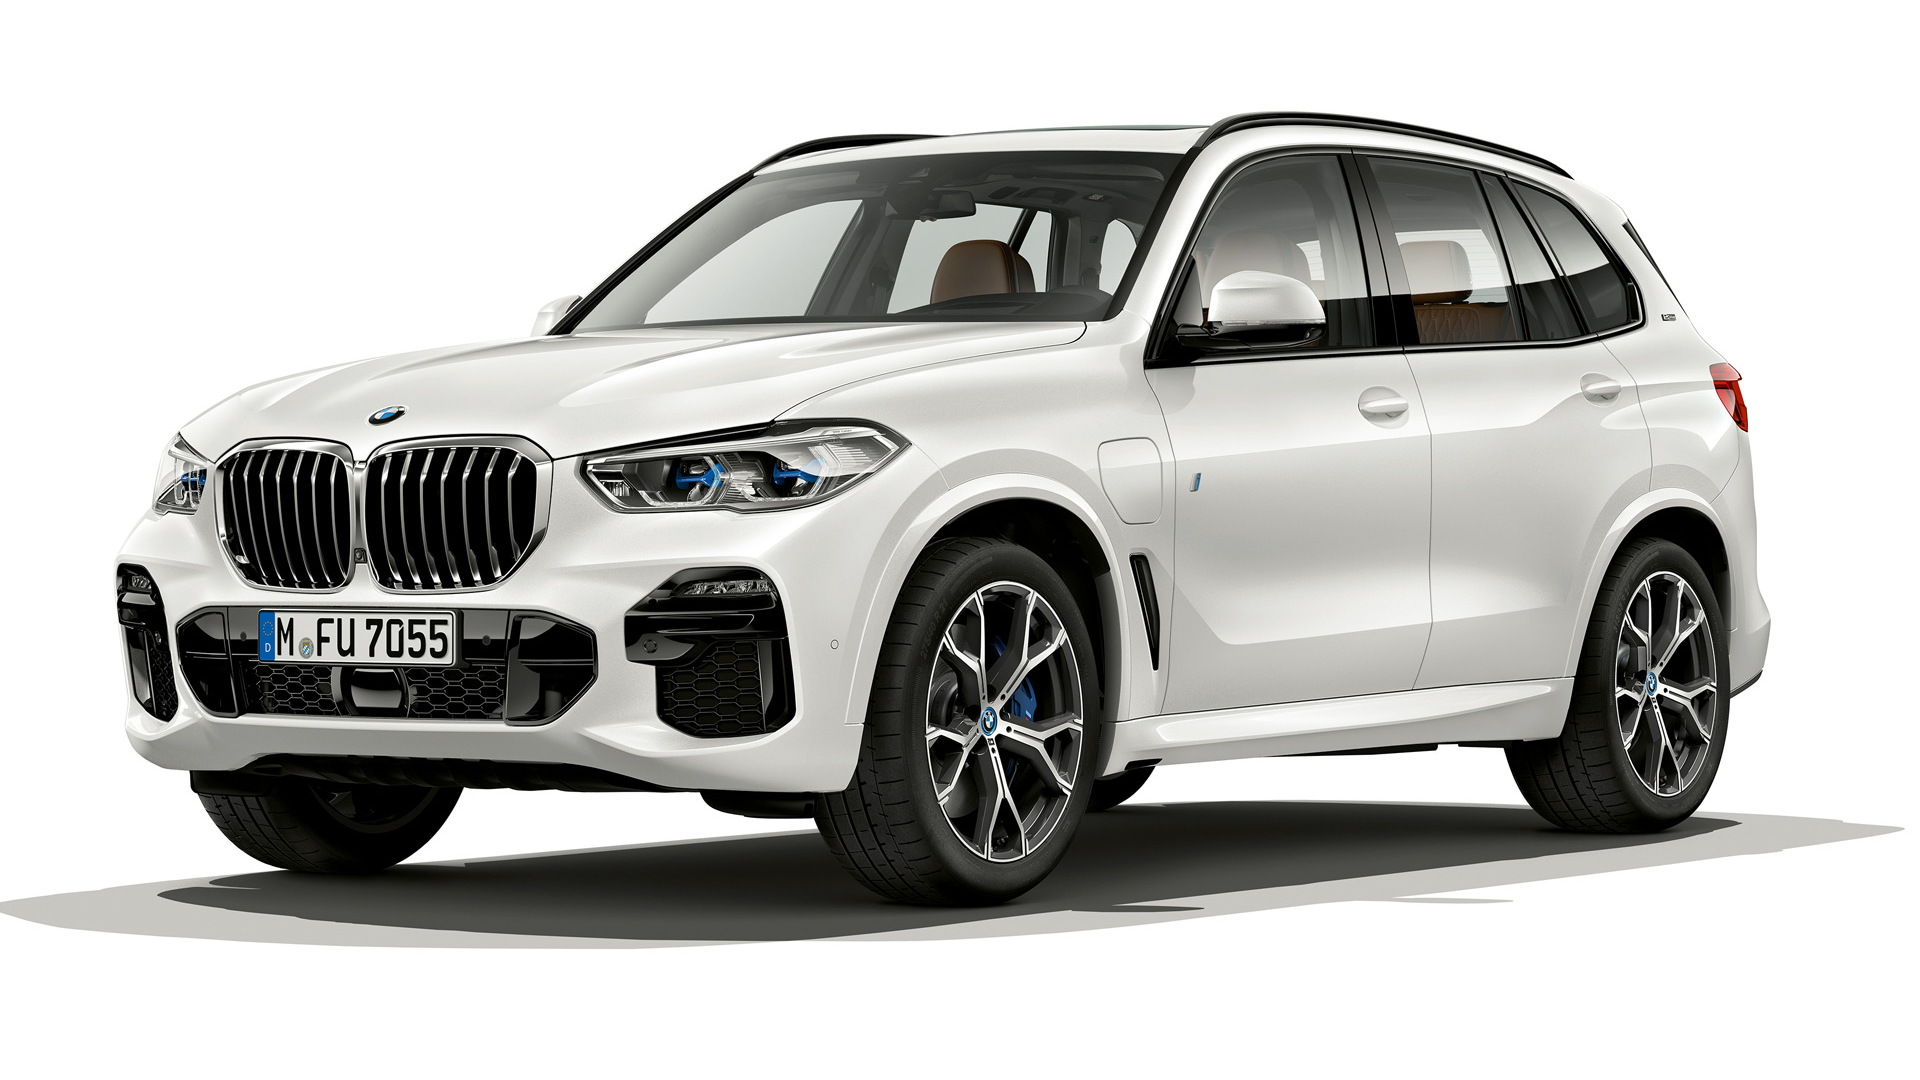 2018 BMW X5 Gets Diesel Engines And New Design >> Bmw X5 News Green Car Photos News Reviews And Insights